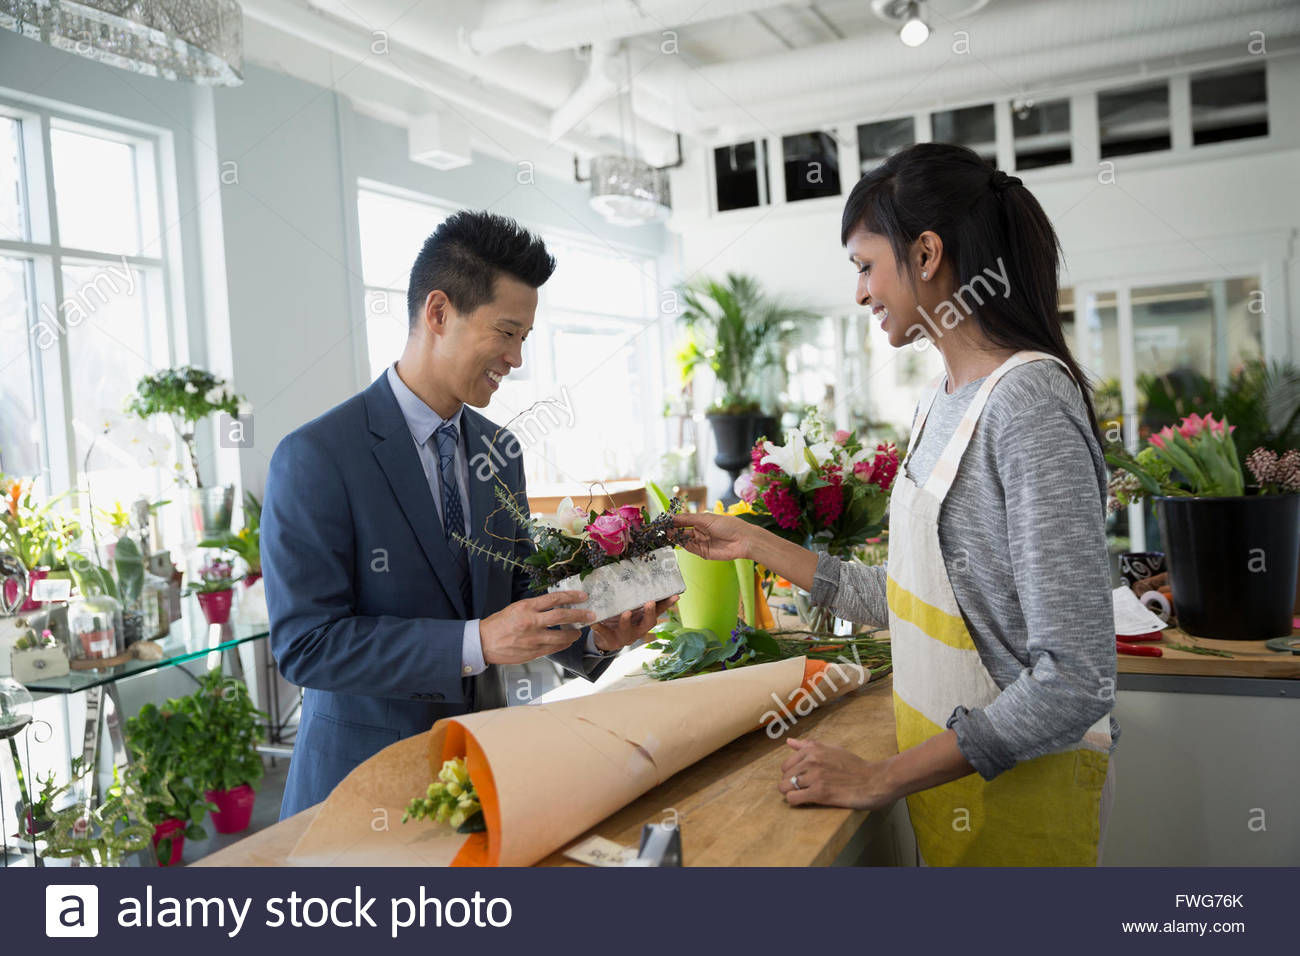 Florist presenting bouquet to man in flower shop - Stock Image